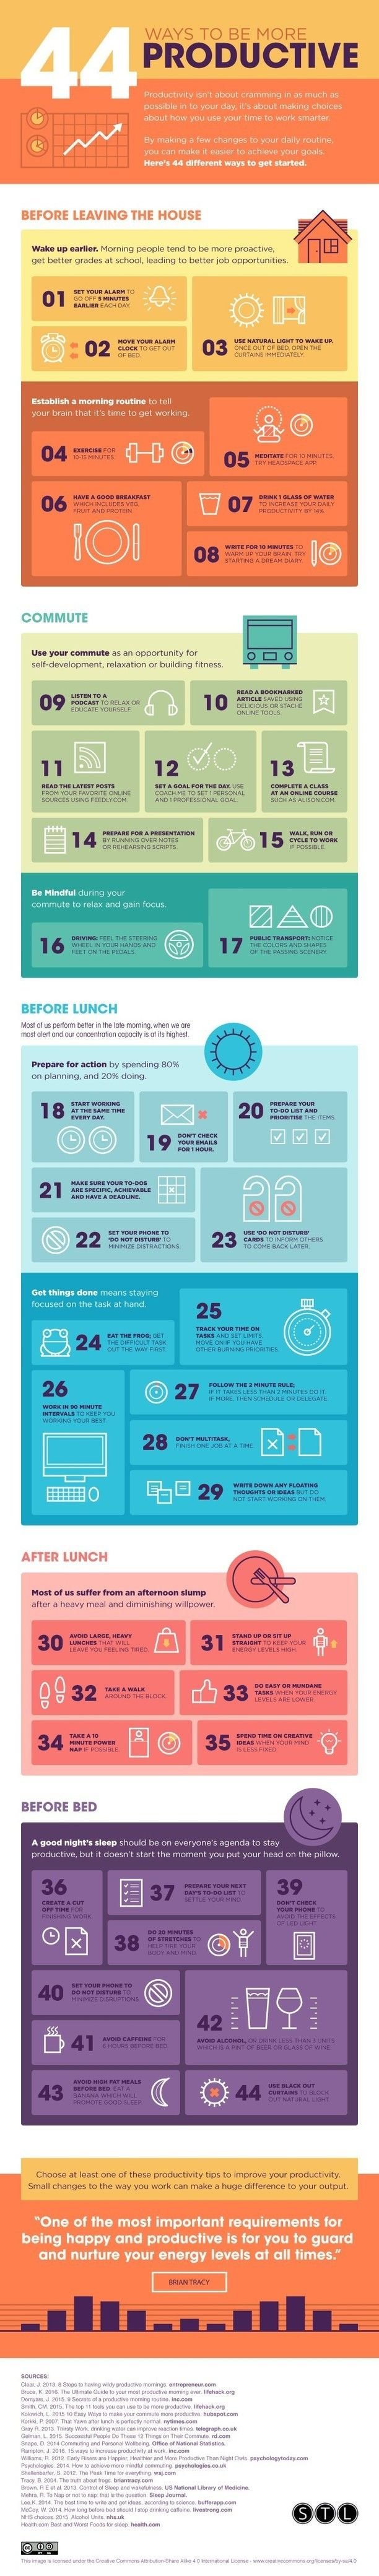 44 Ways to Boost Workplace Productivity [Infographic]